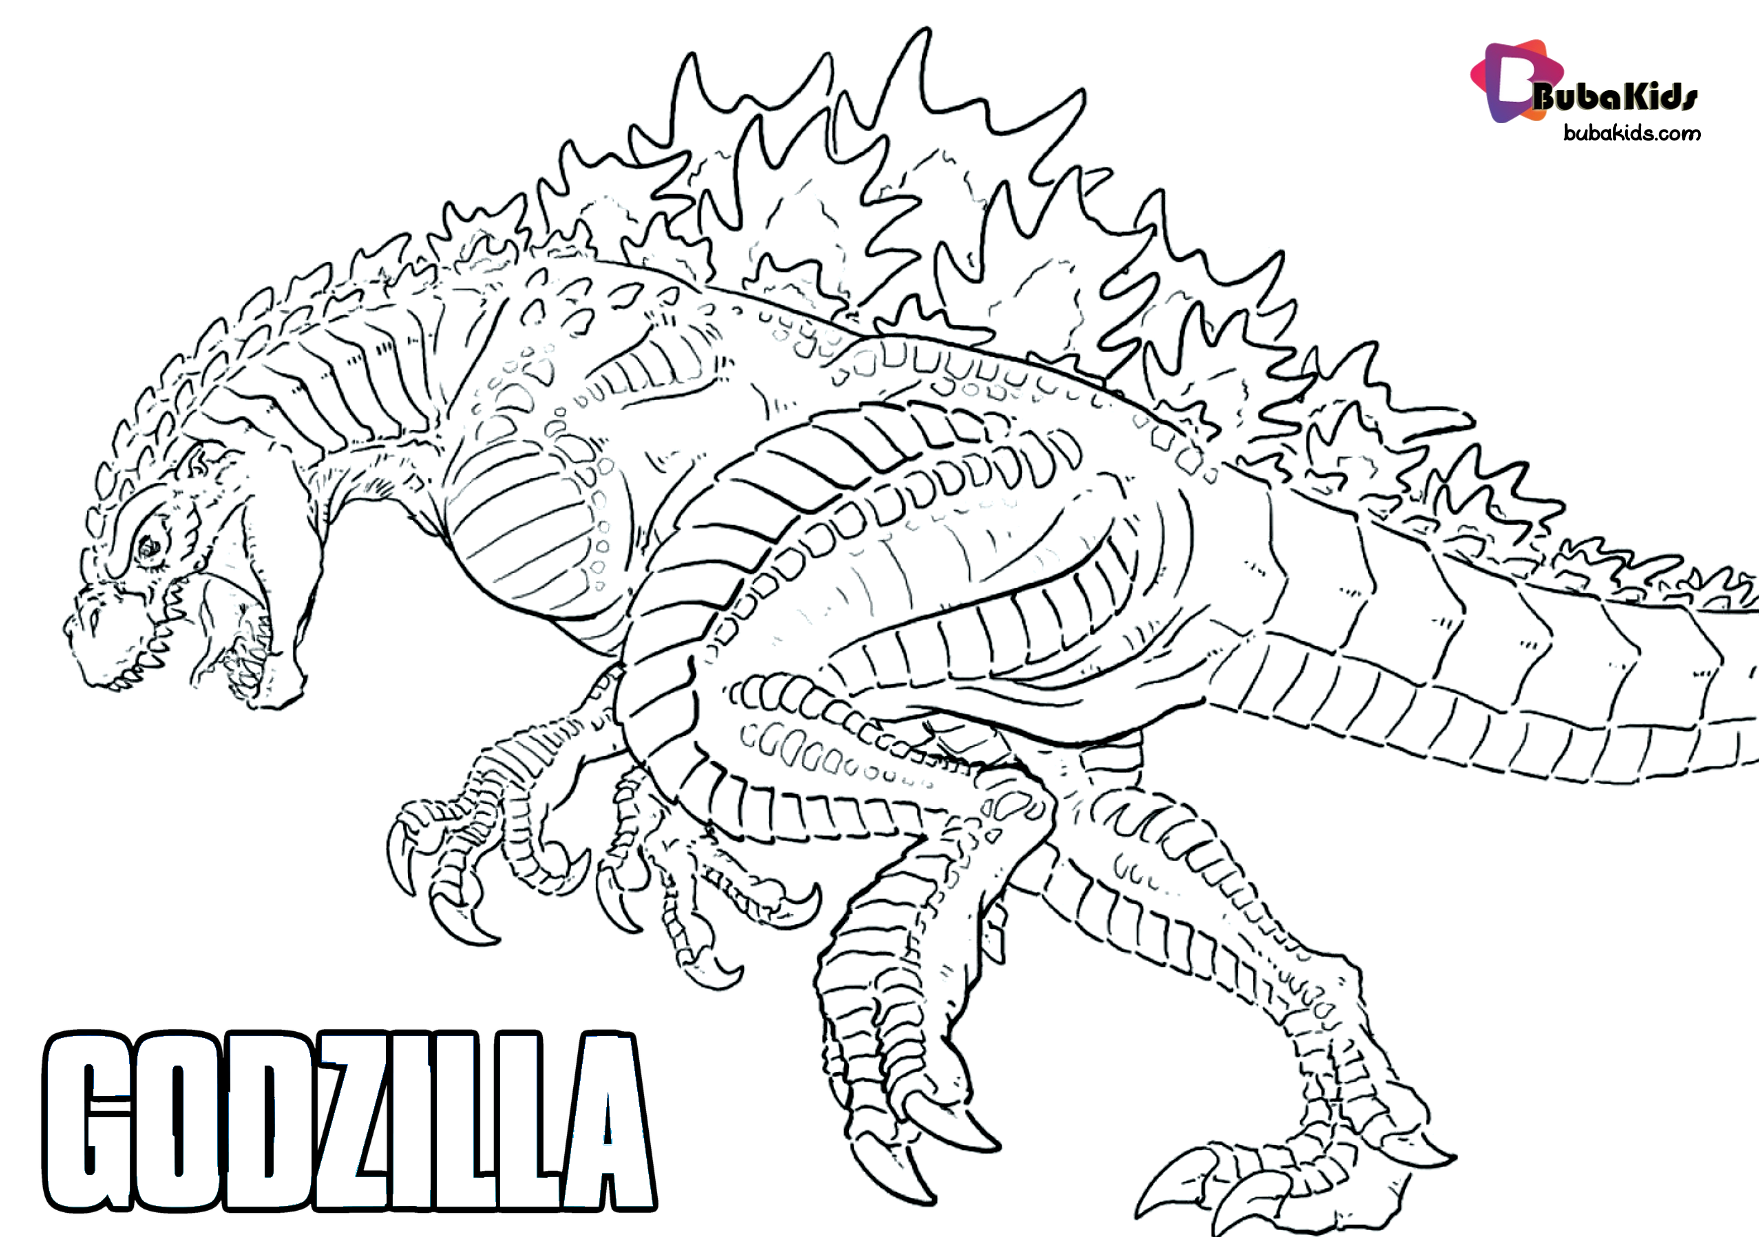 Godzilla King Of Monsters Free Printable Coloring Page Bubakids Com Godzilla Bubakidscom Godzill Coloring Pages Coloring Book Pages Animal Coloring Pages